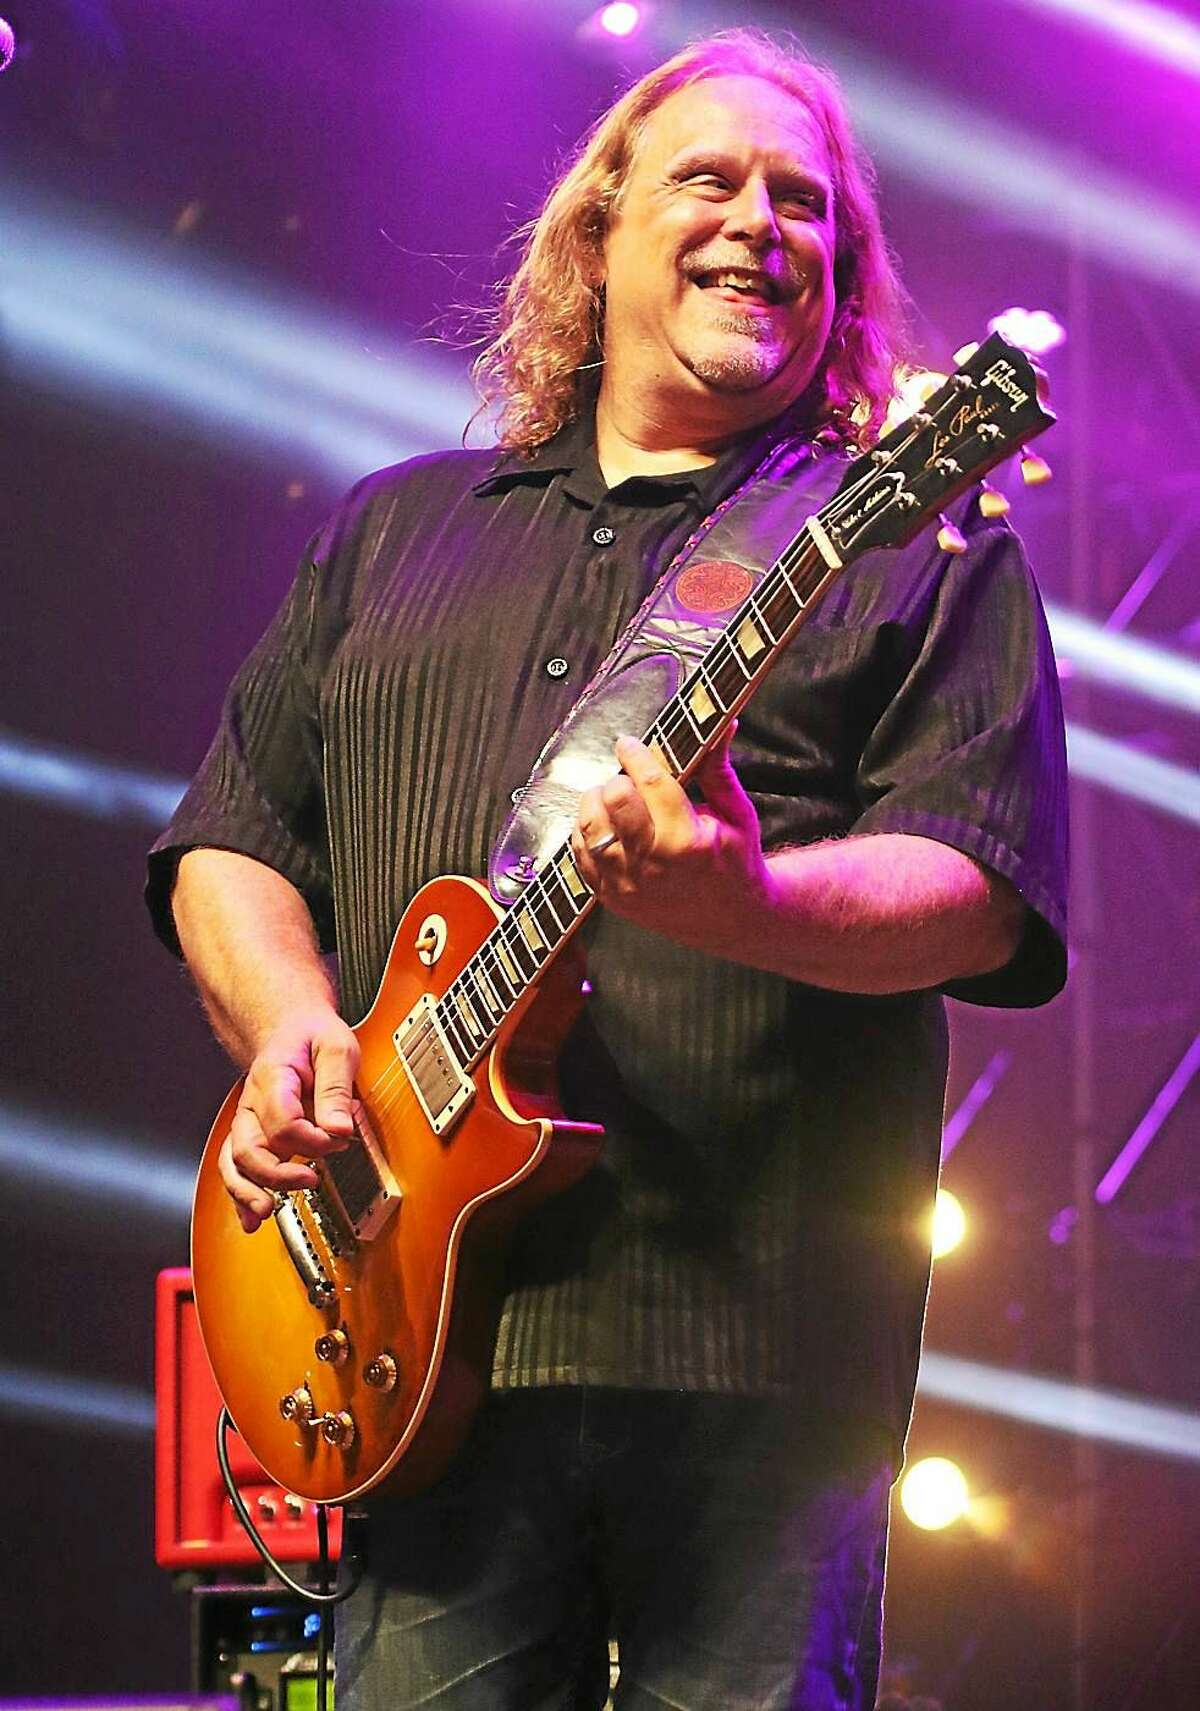 Photo by John Atashian Warren Haynes and the All Stars, including Warren Haynes, performed at the Gathering of the Vibes in Bridgeport.